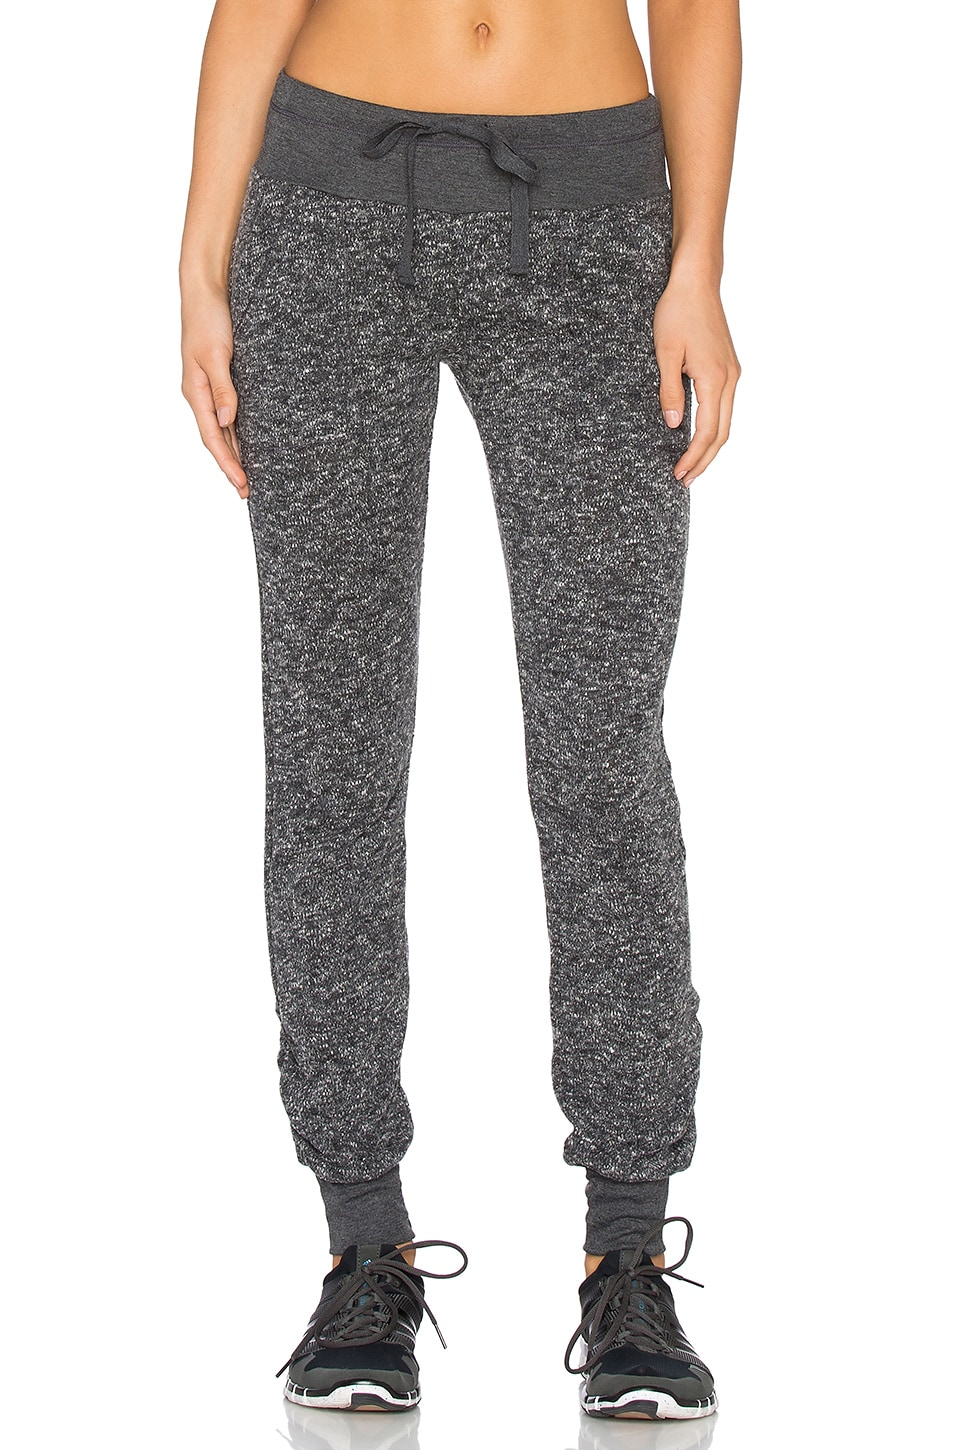 NUX Malibu Sweatpant in Charcoal Tweed